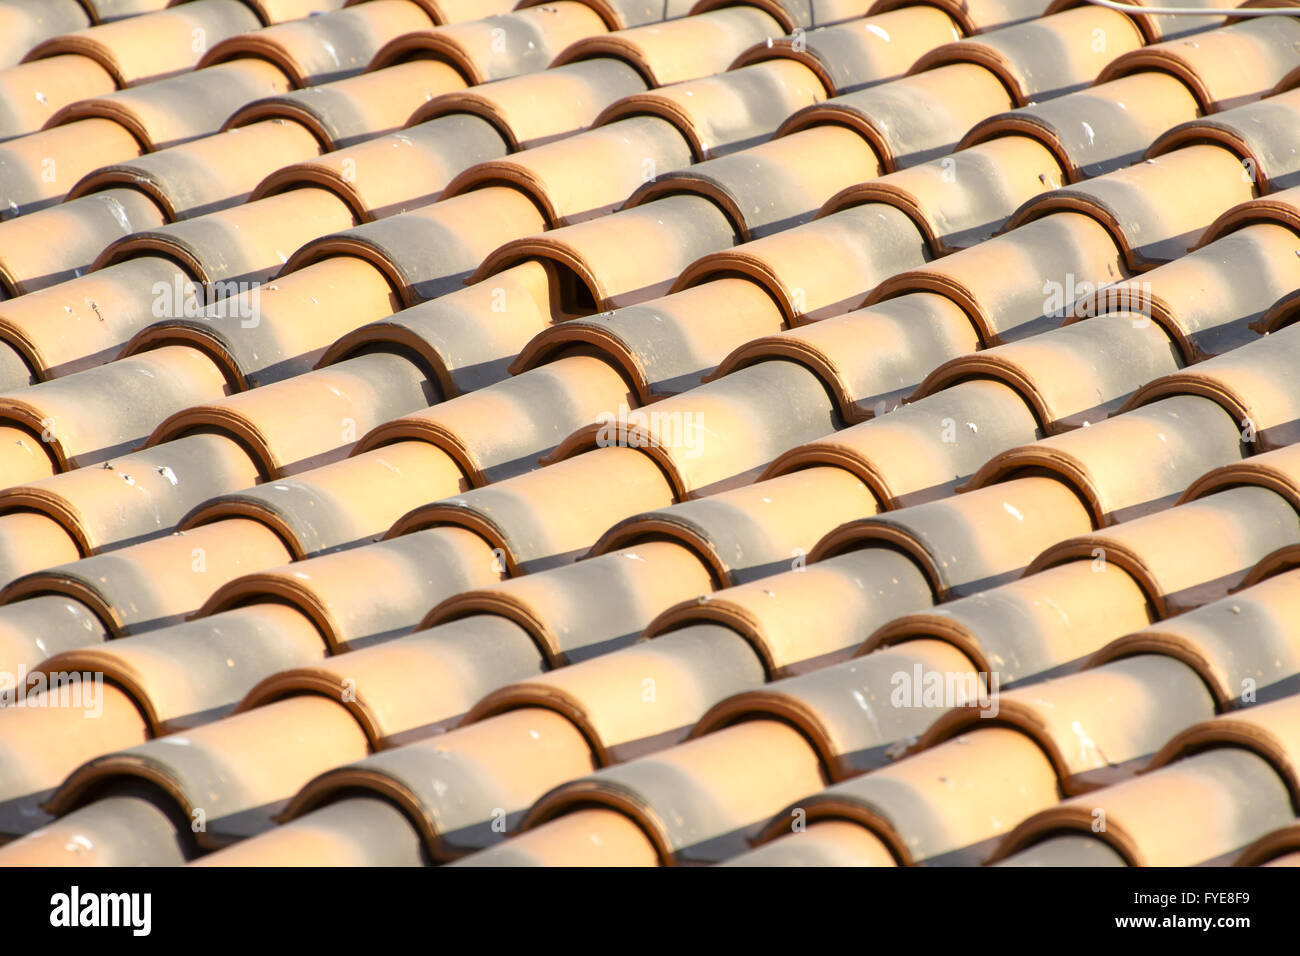 New roof tiles close up detail - Stock Image